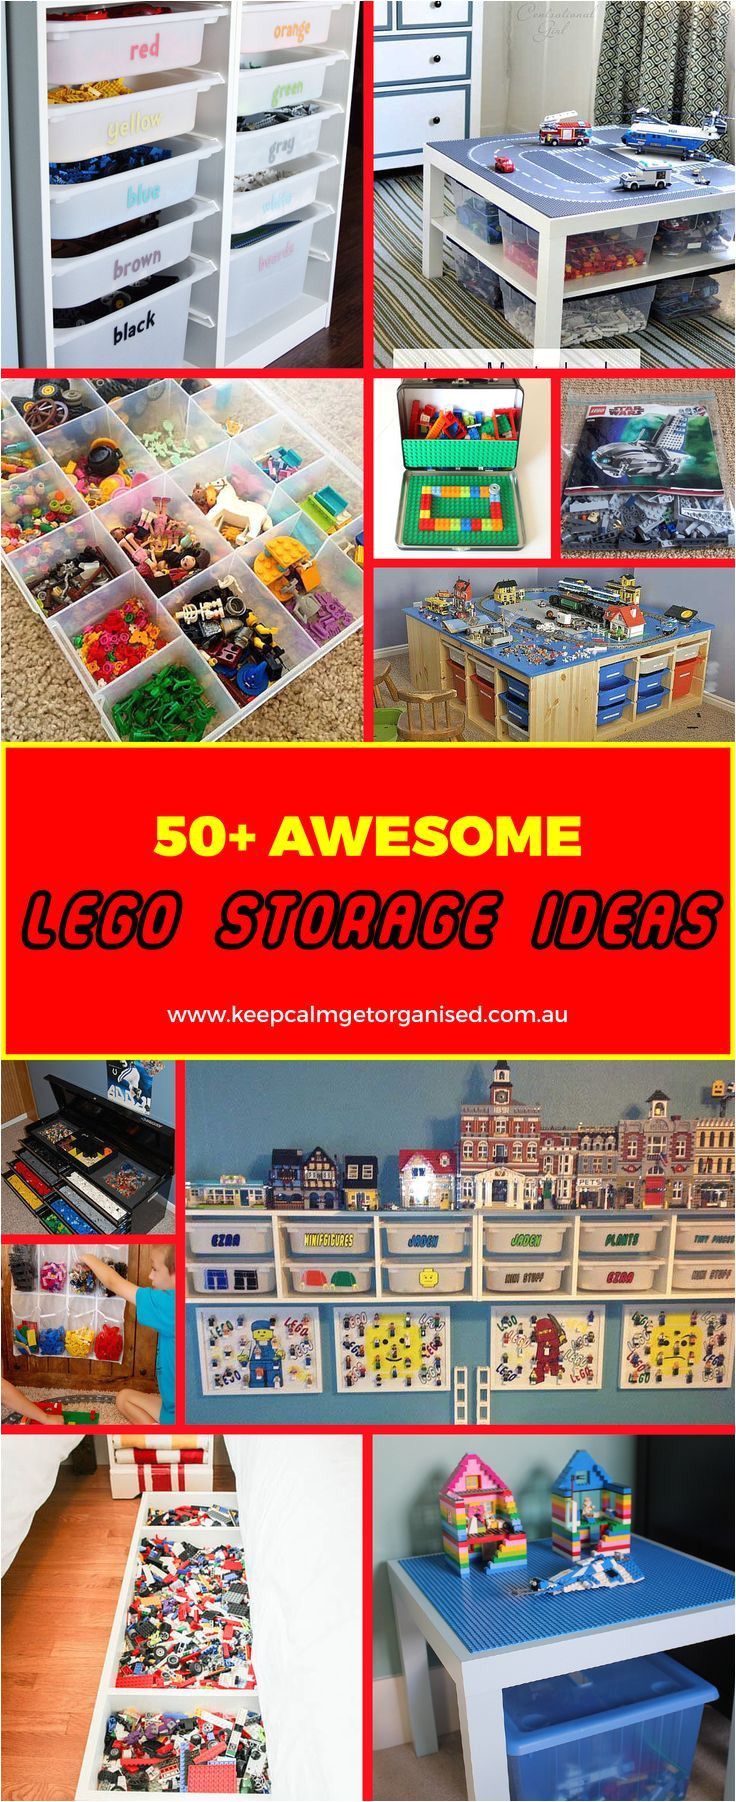 here s a major list of inspiration for lego storage ideas from over the closet shoe holders where bricks can be sorted by color or size to repurposed tool